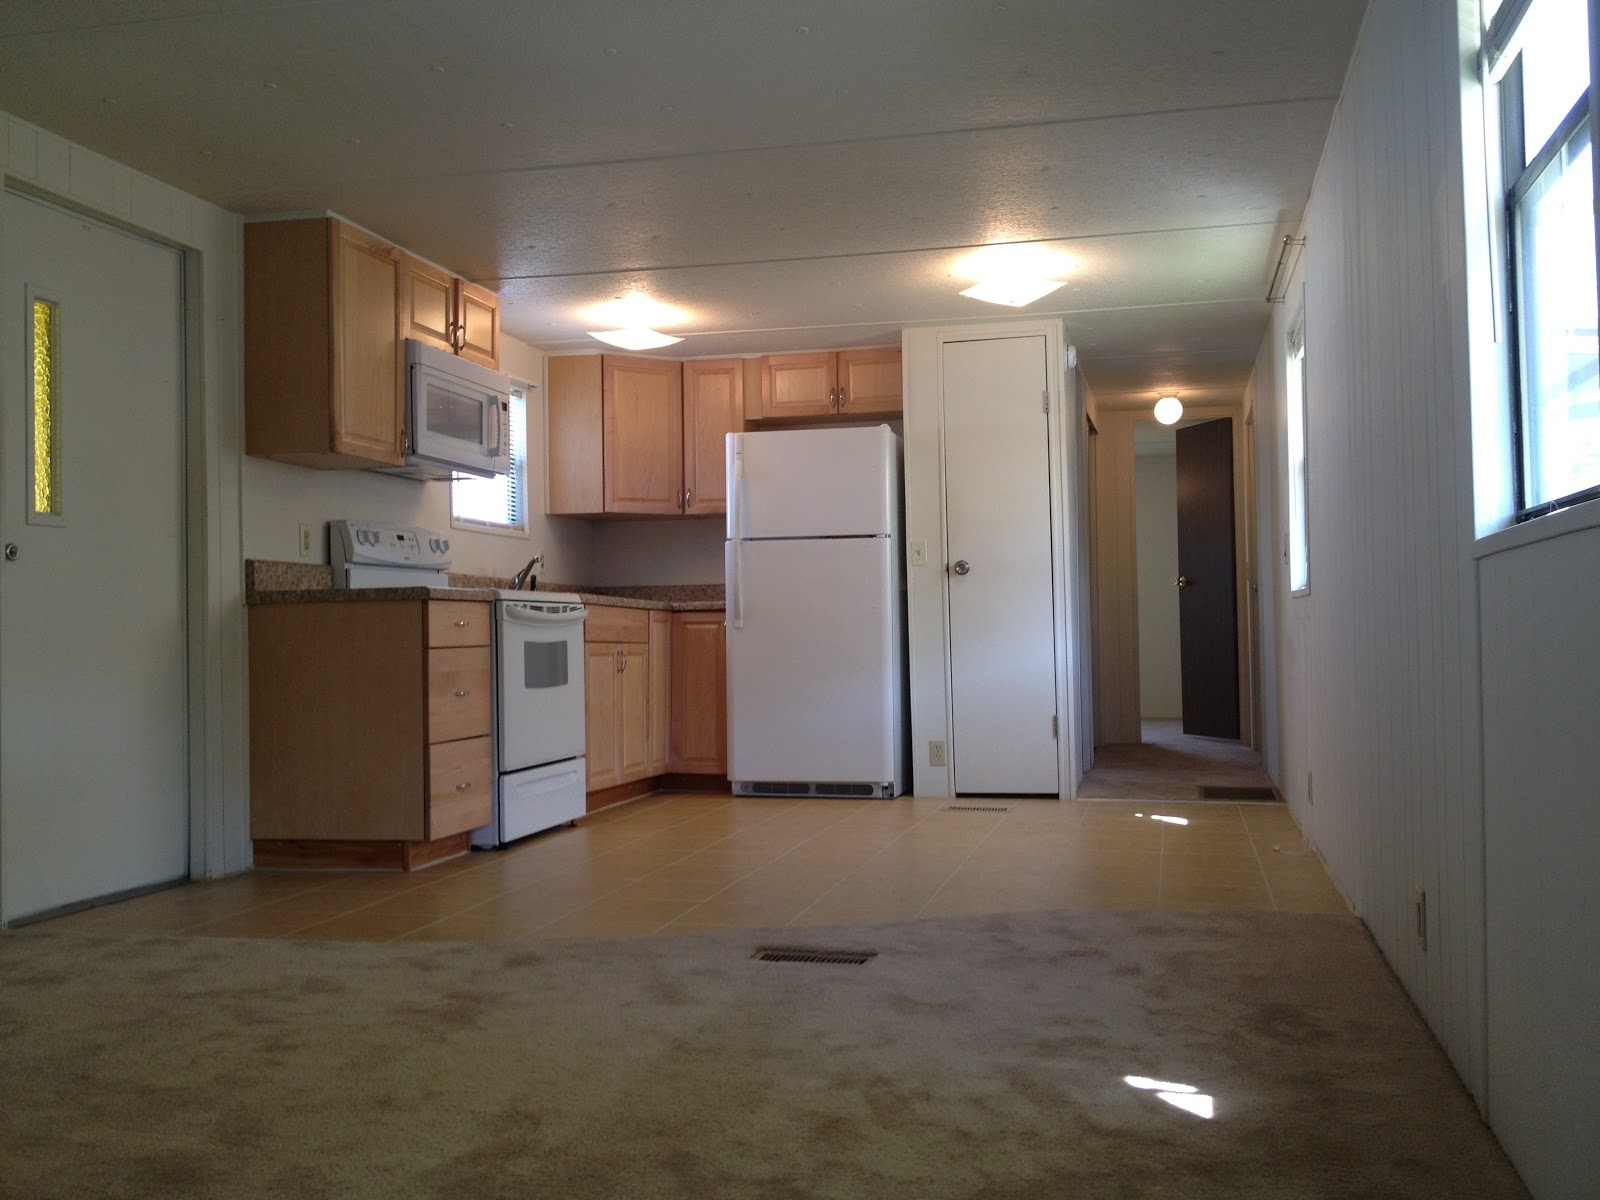 One Bedroom Bath Mobile Home. 1 Bedroom Mobile Homes For Sale   Bedroom Style Ideas